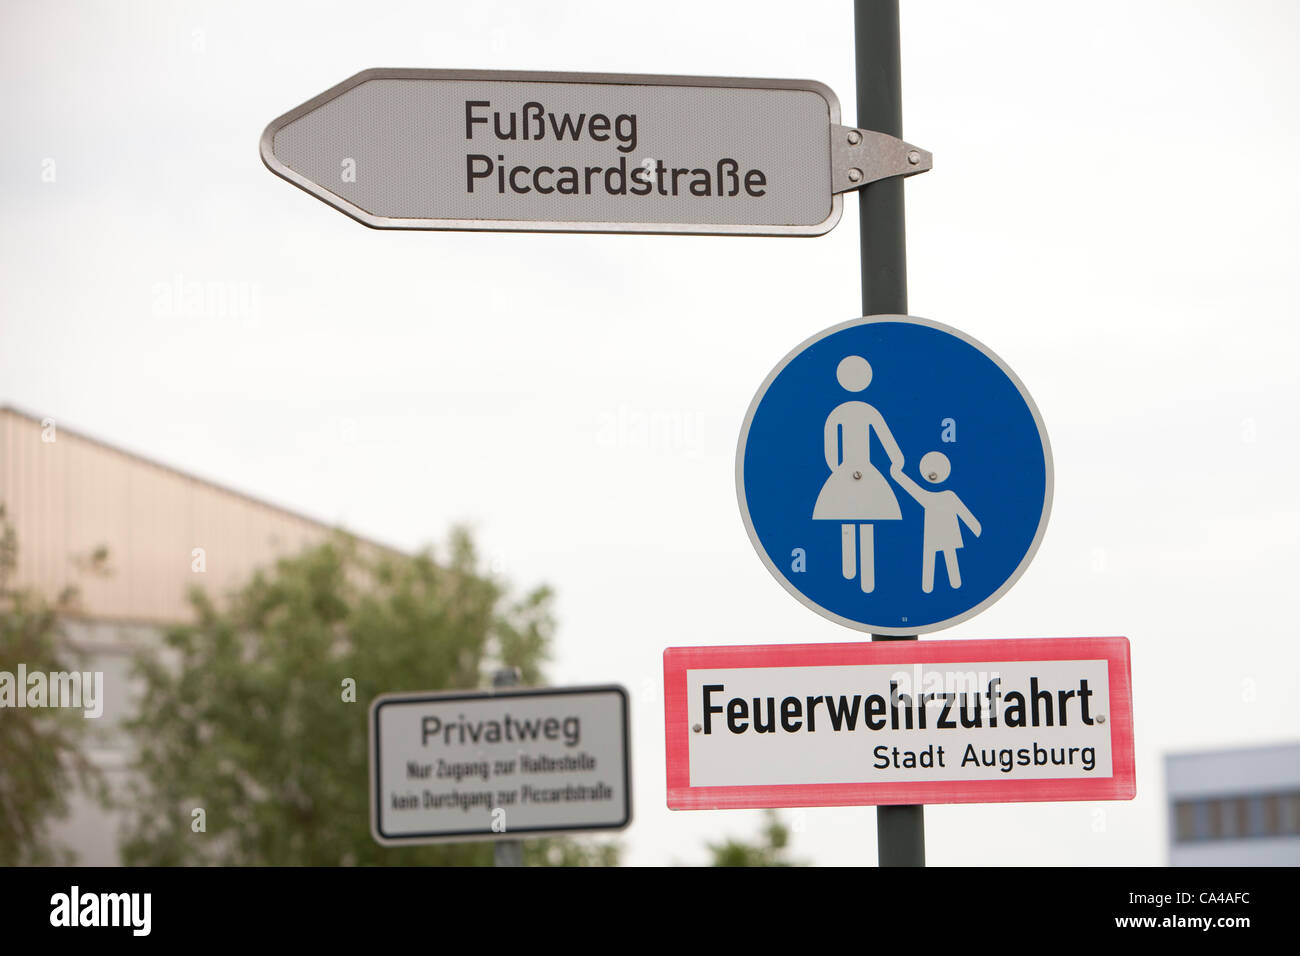 pedestrian, posters, signage, description, urban, city, Munich, Germany, road, sing, family, street - Stock Image